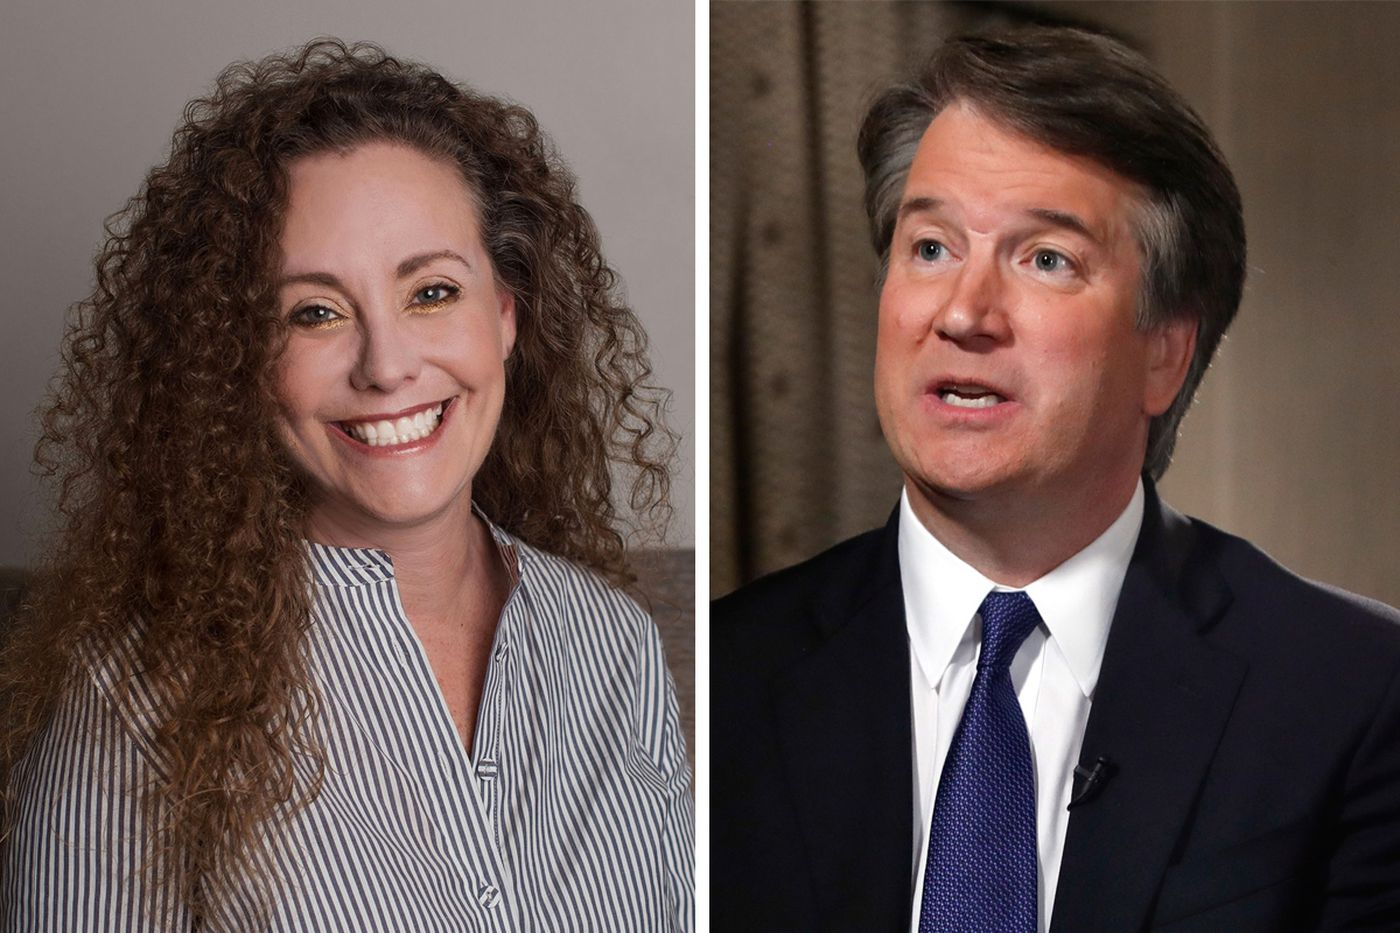 EX-BOYFRIEND OF THIRD KAVANAUGH ACCUSER FILED RESTRAINING ORDER AGAINST HER